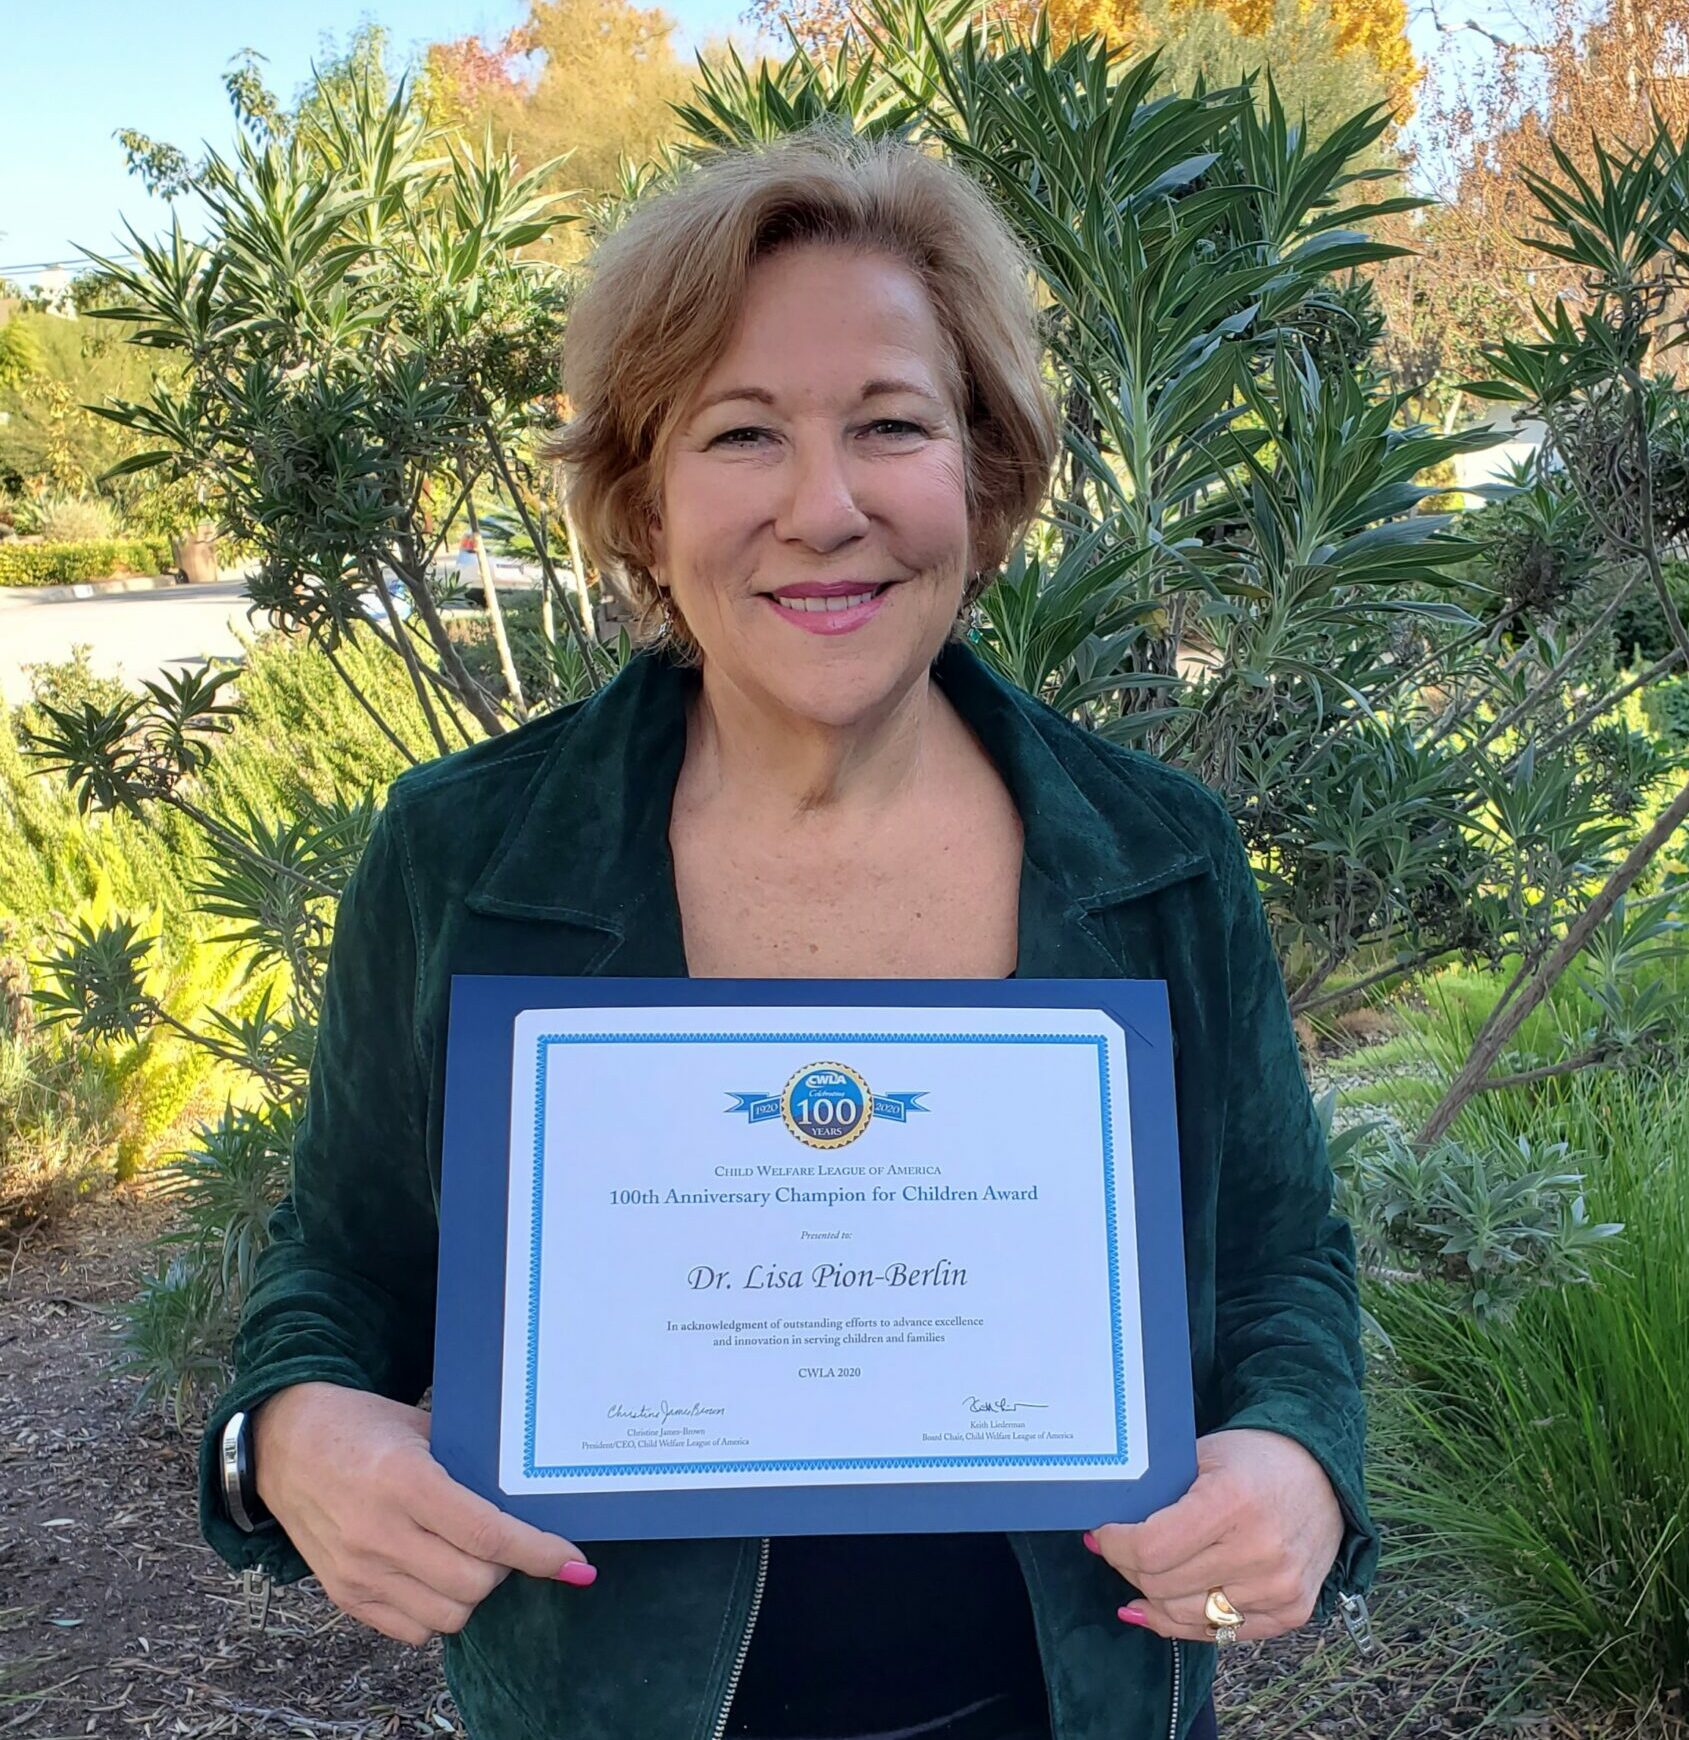 Congratulations to Dr. Lisa, President and C.E.O of Parents Anonymous® for receiving the 100th Anniversary Dr. Lisa holding Champion for Children Award from Child Welfare League of America